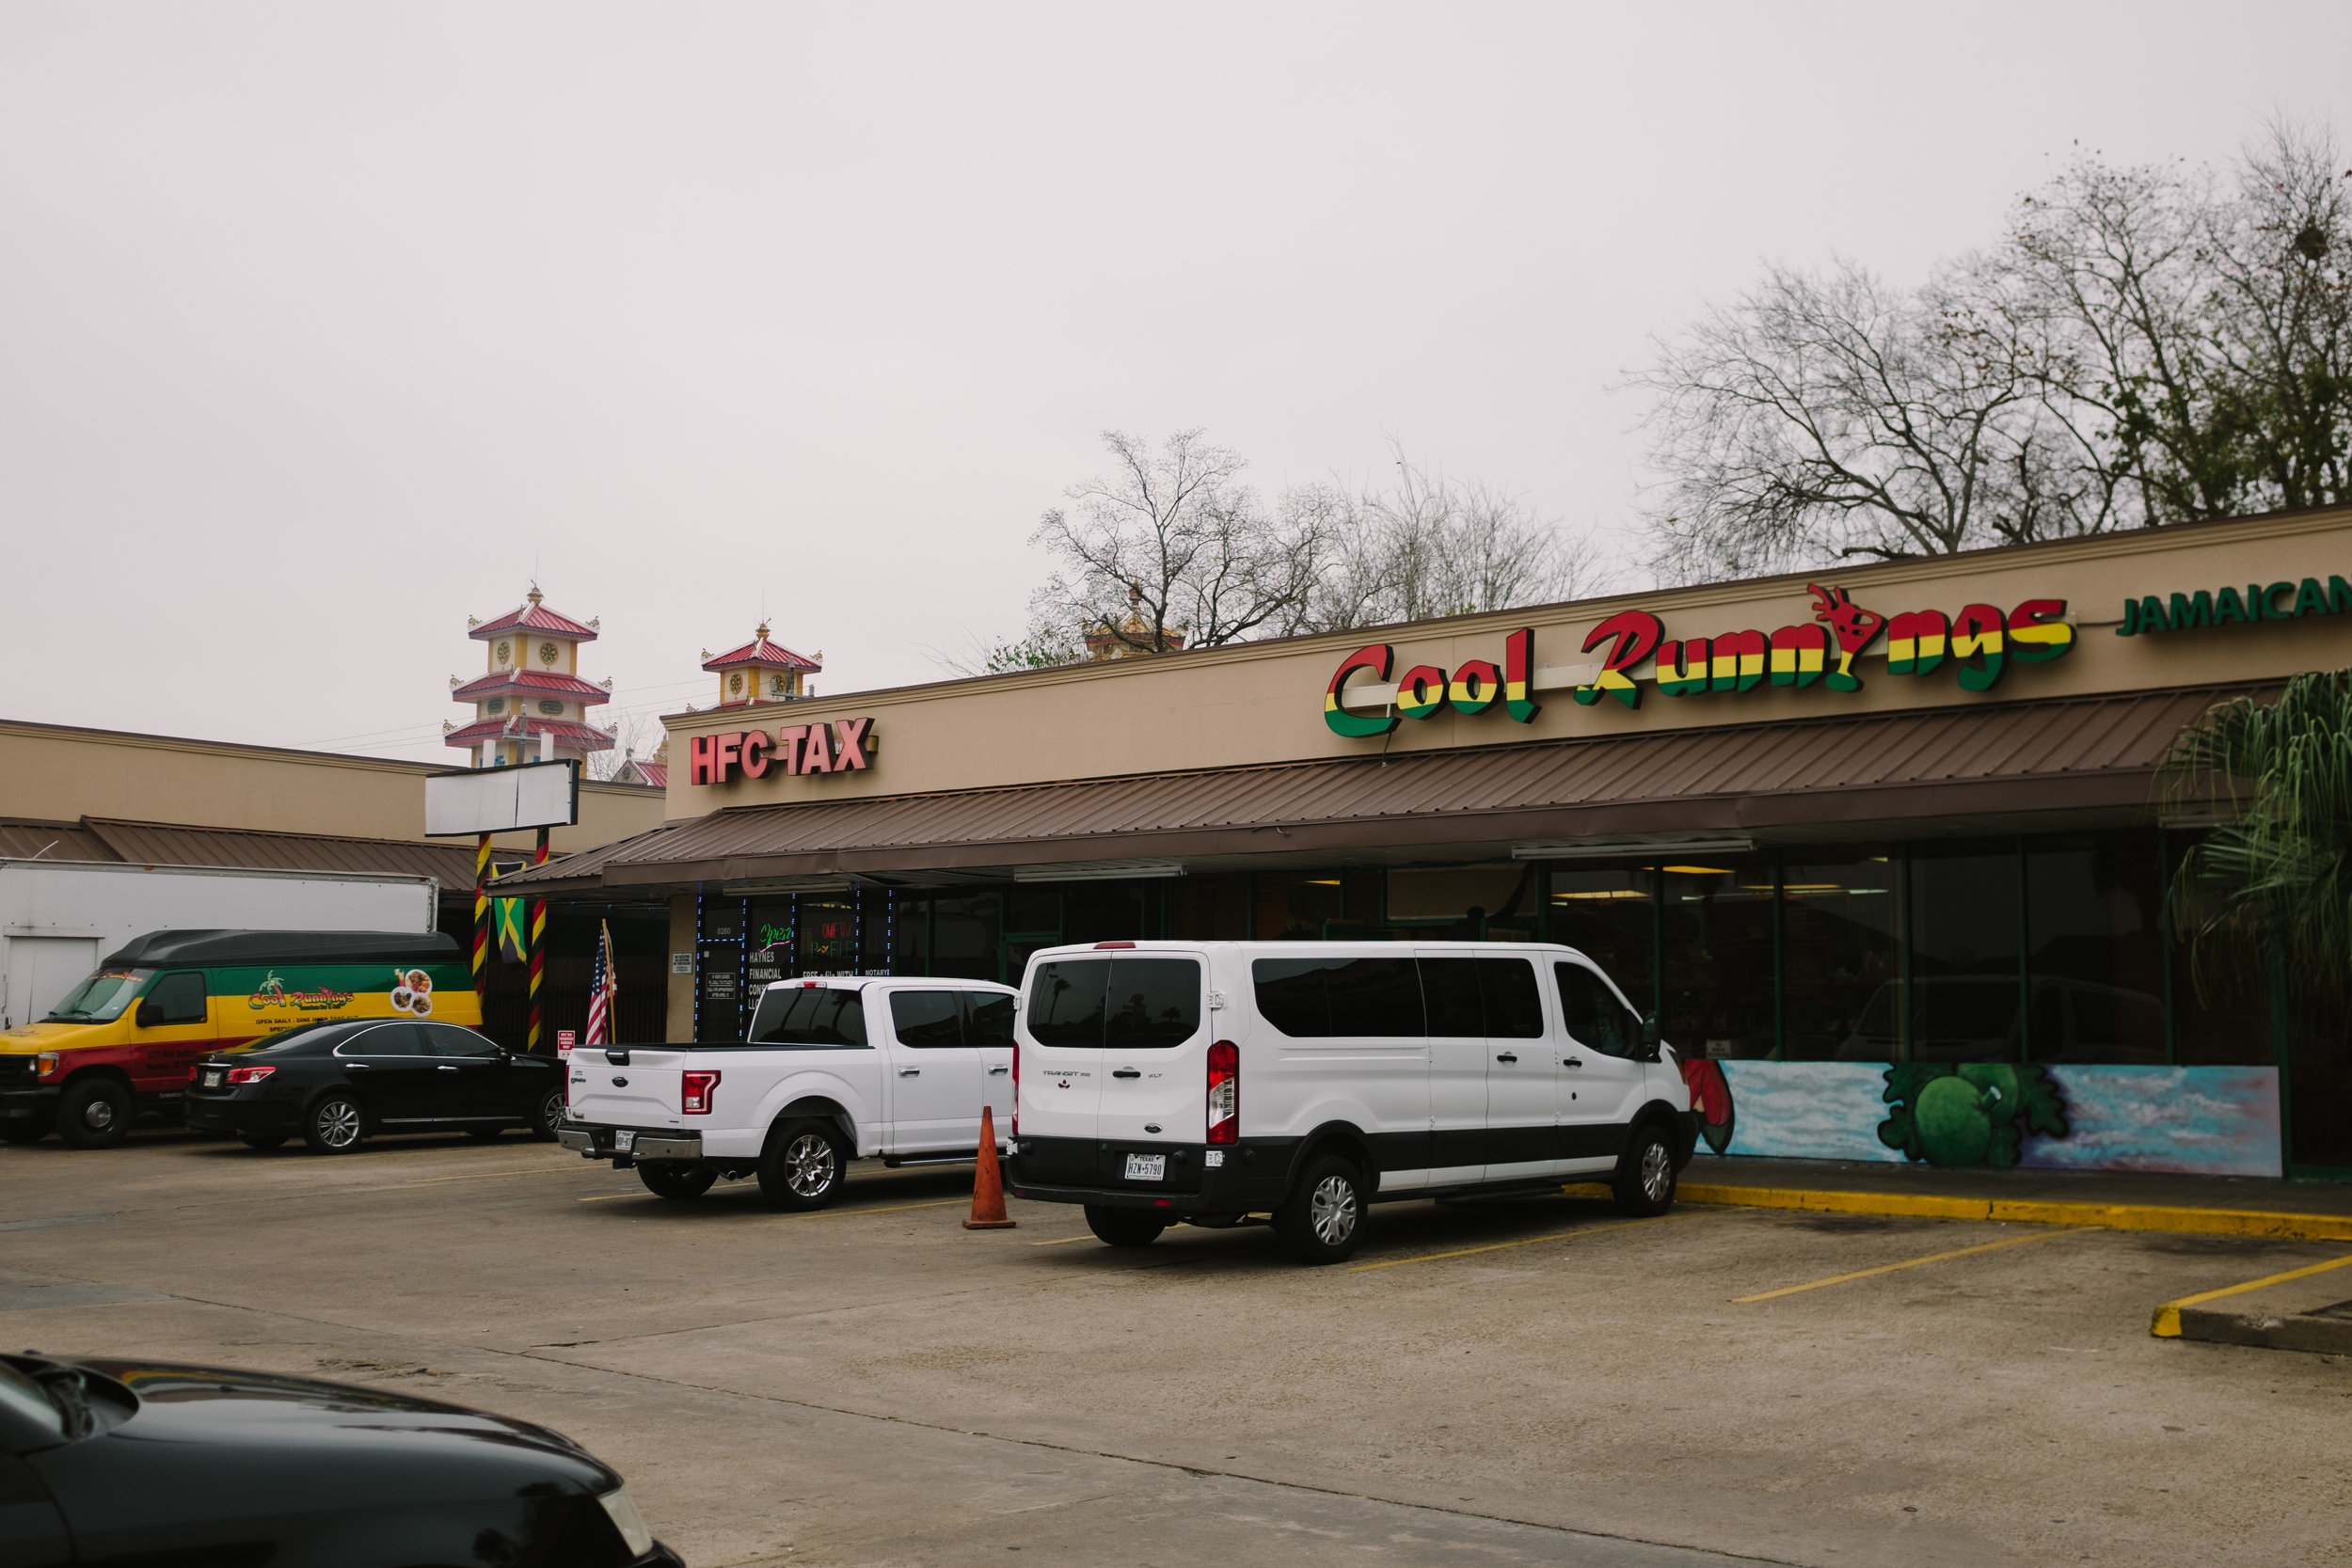 Cool Runnings is the hub of Jamaican activity in Houston.  The looming towers of the Cao Dai Temple (the largest temple in North America representing this native Vietnamese religion) betray the diversity of this southwest Houston neighborhood.